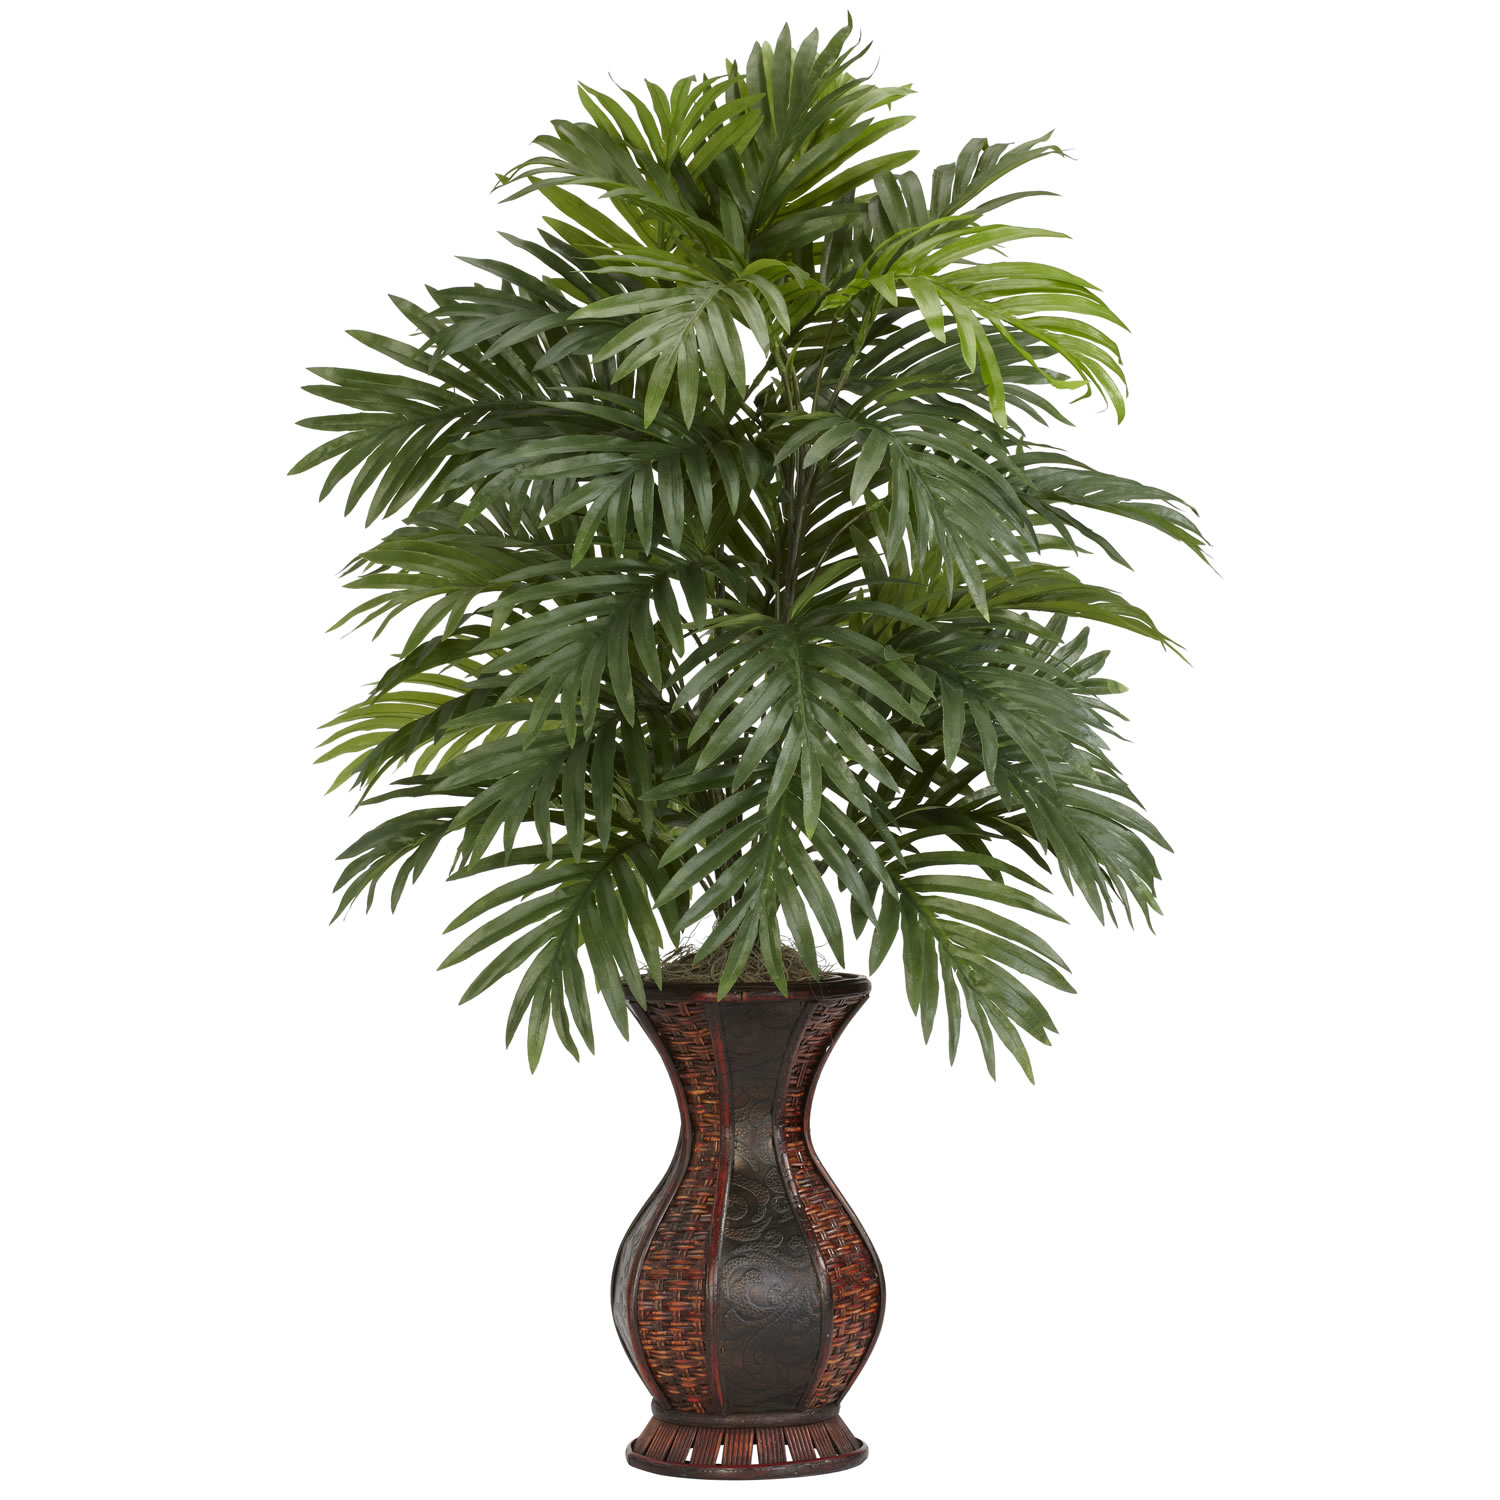 37 inch areca palm in urn 6661 for Pictures of areca palm plants